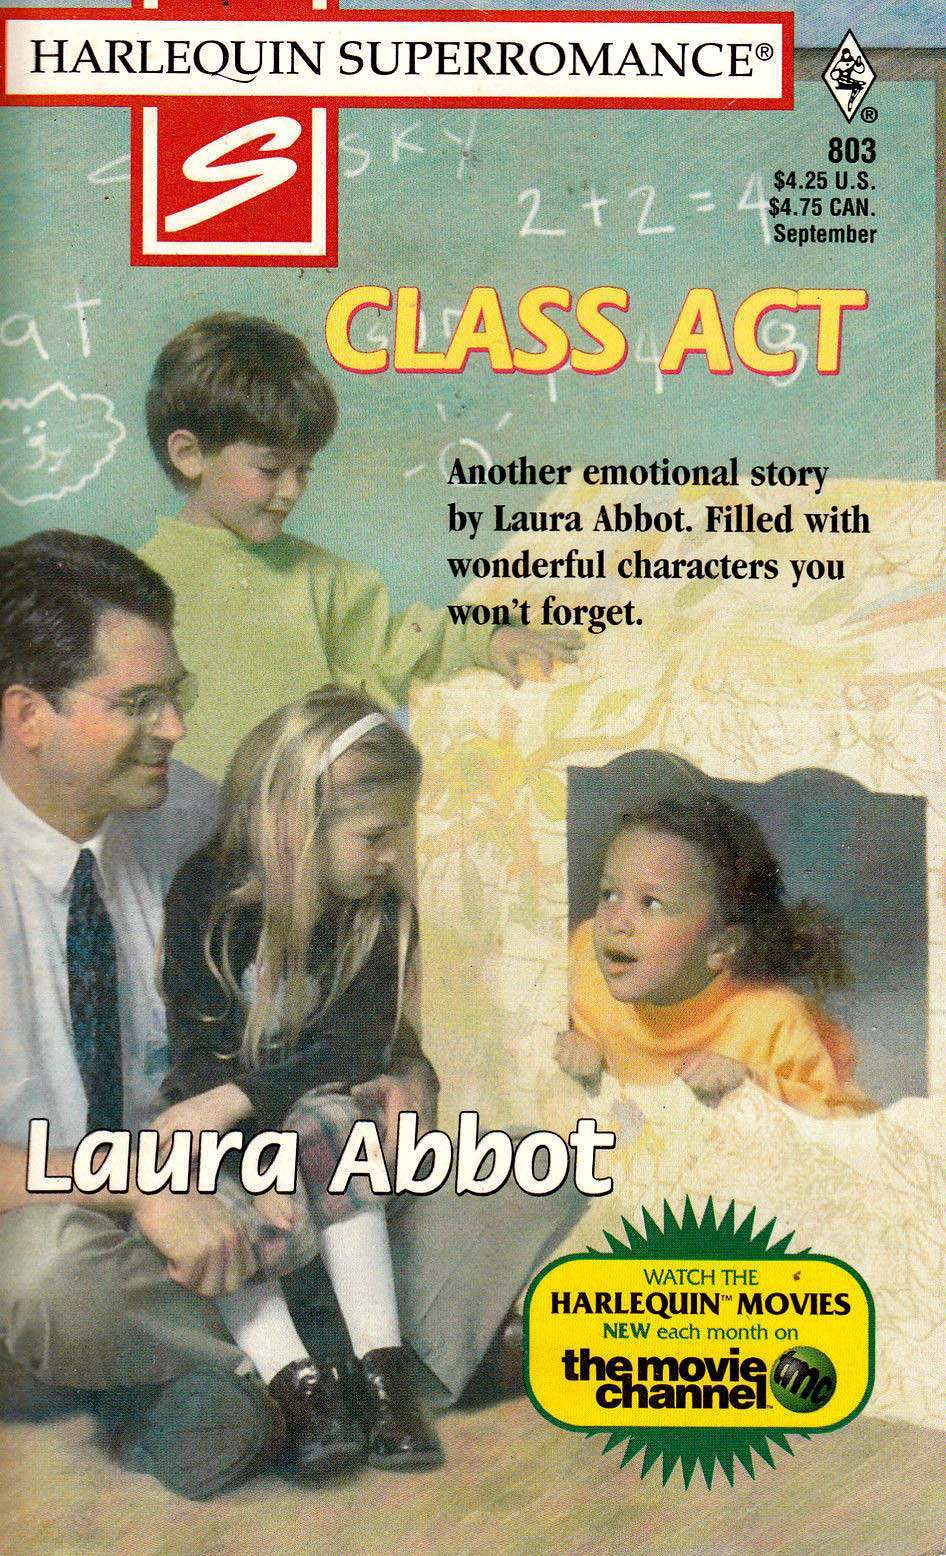 Class Act - by Laura Abbot - Harlequin Super Romance - # 803 - 1998